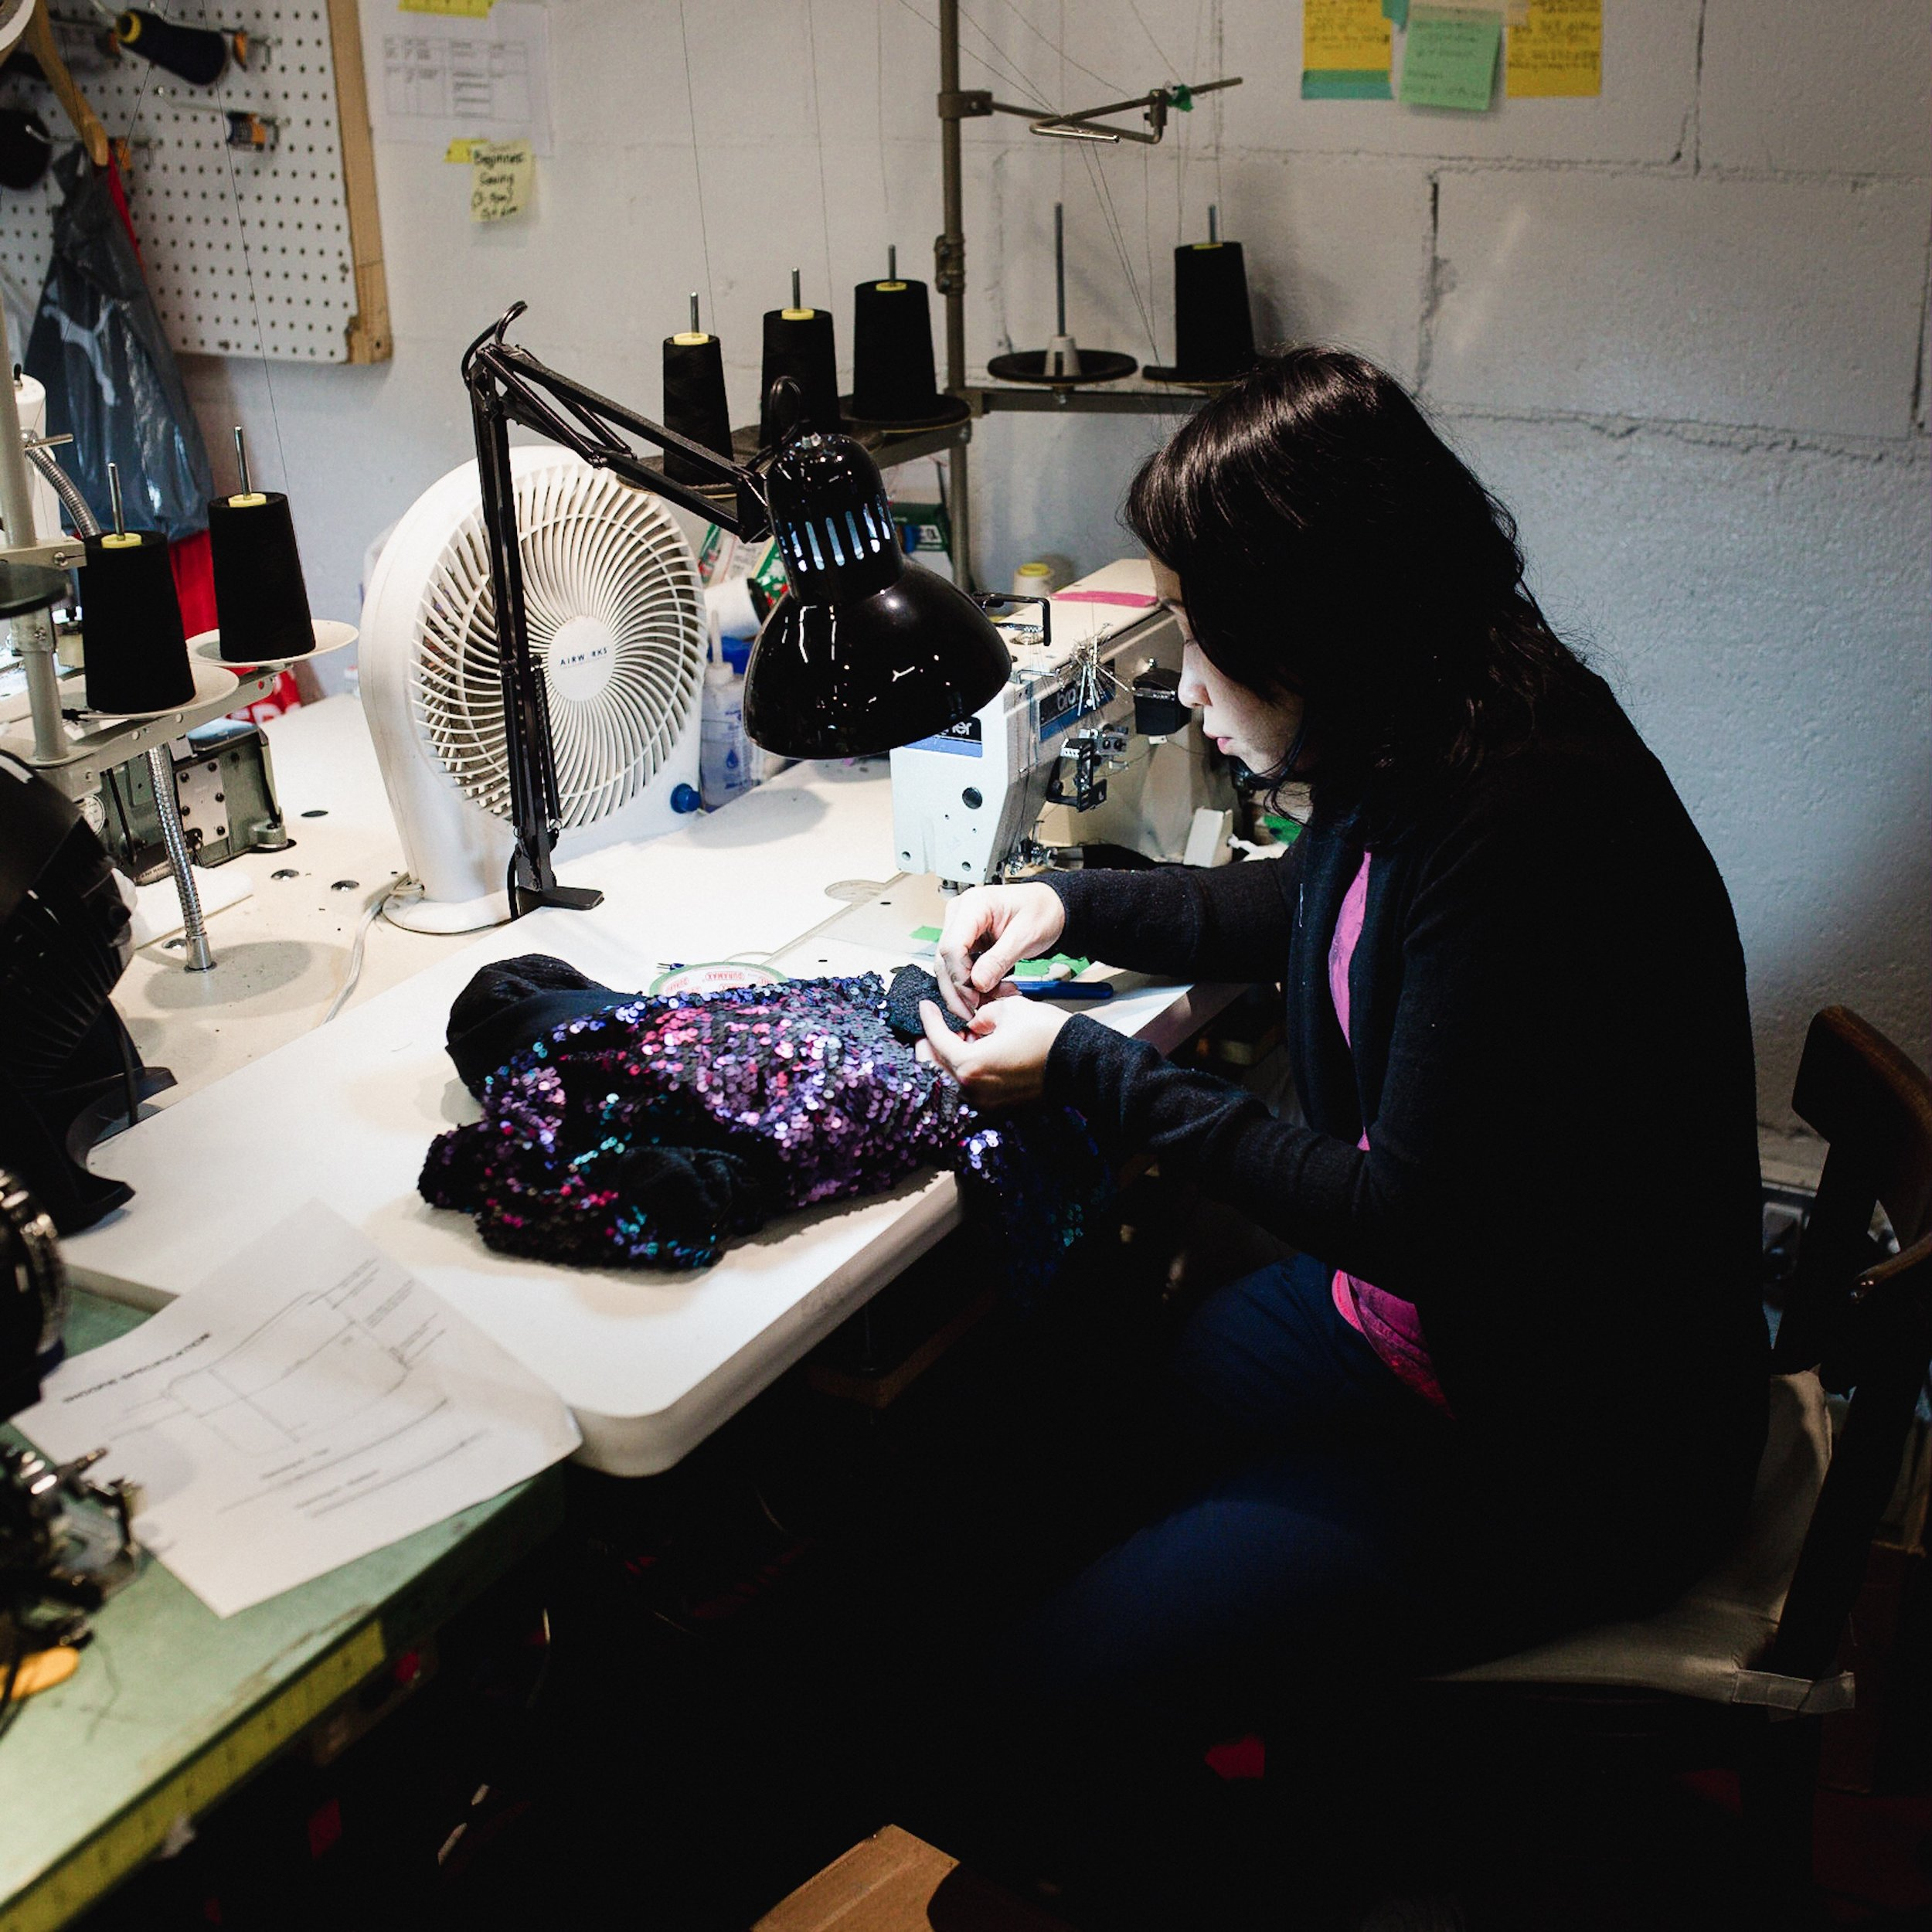 industrial-sewing-class-vancouver-thecutfashionacademy